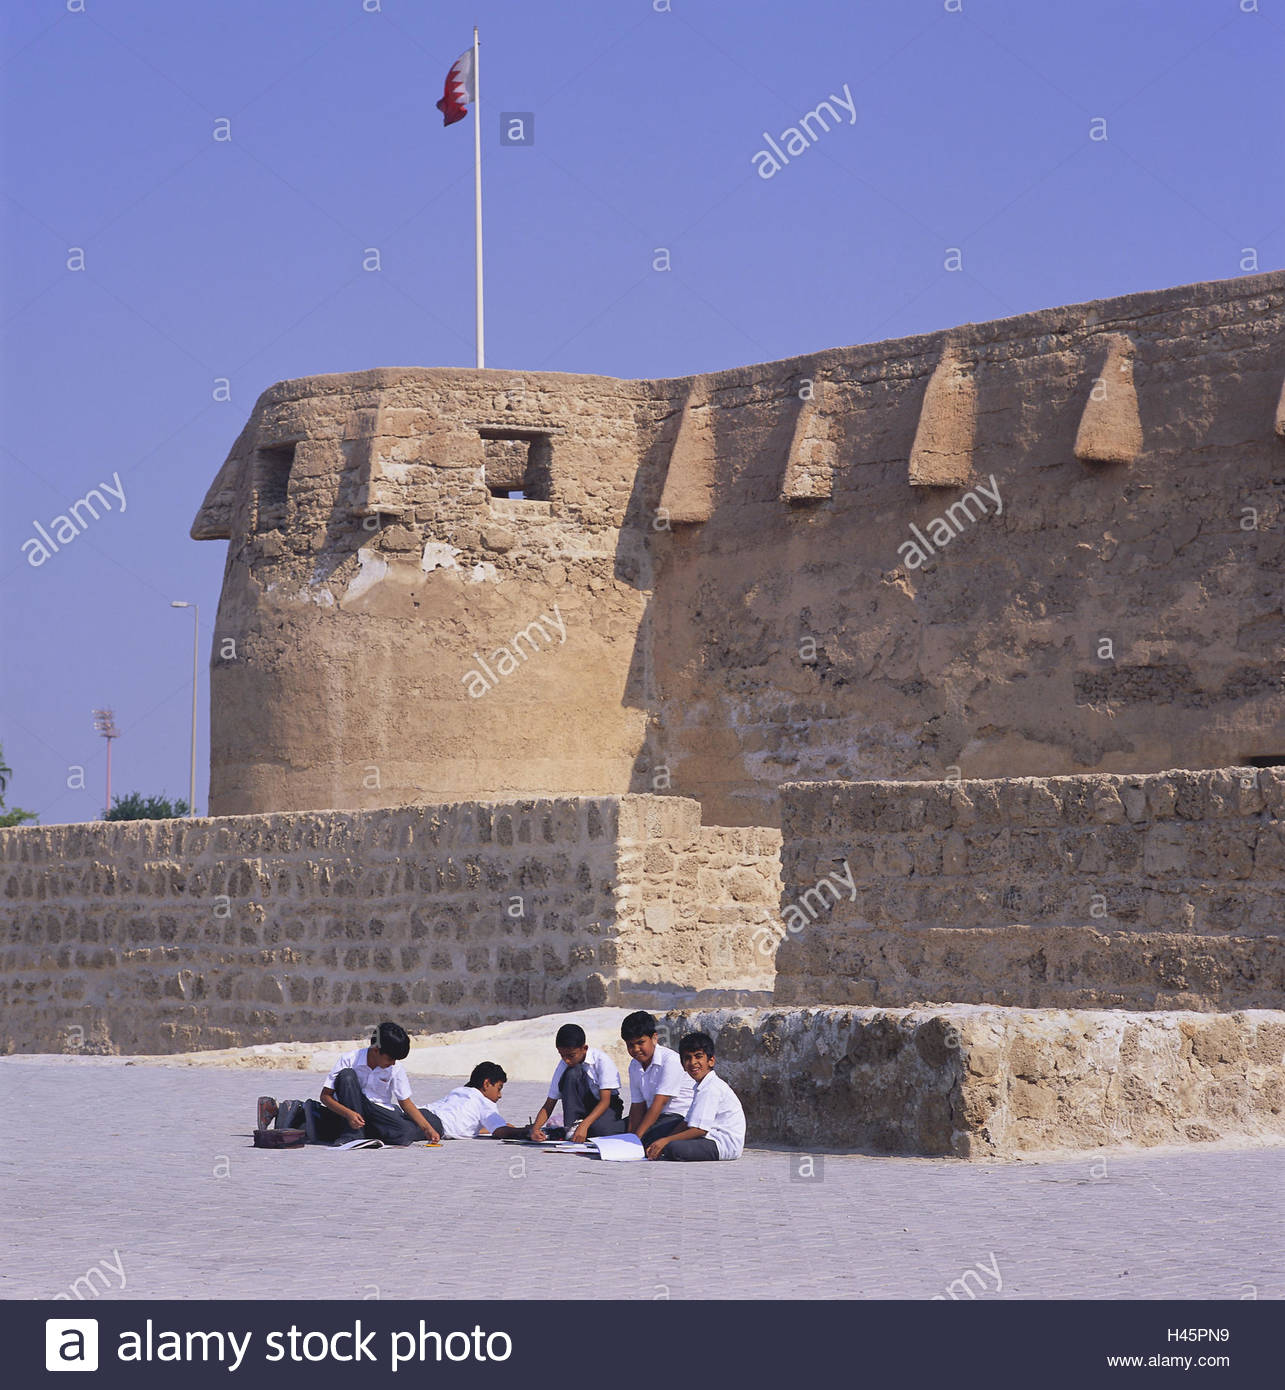 Qala'at Arad Muharraq Island, Bahrain, island Muharraq, fortress, Qala'at Arad, children, no ...